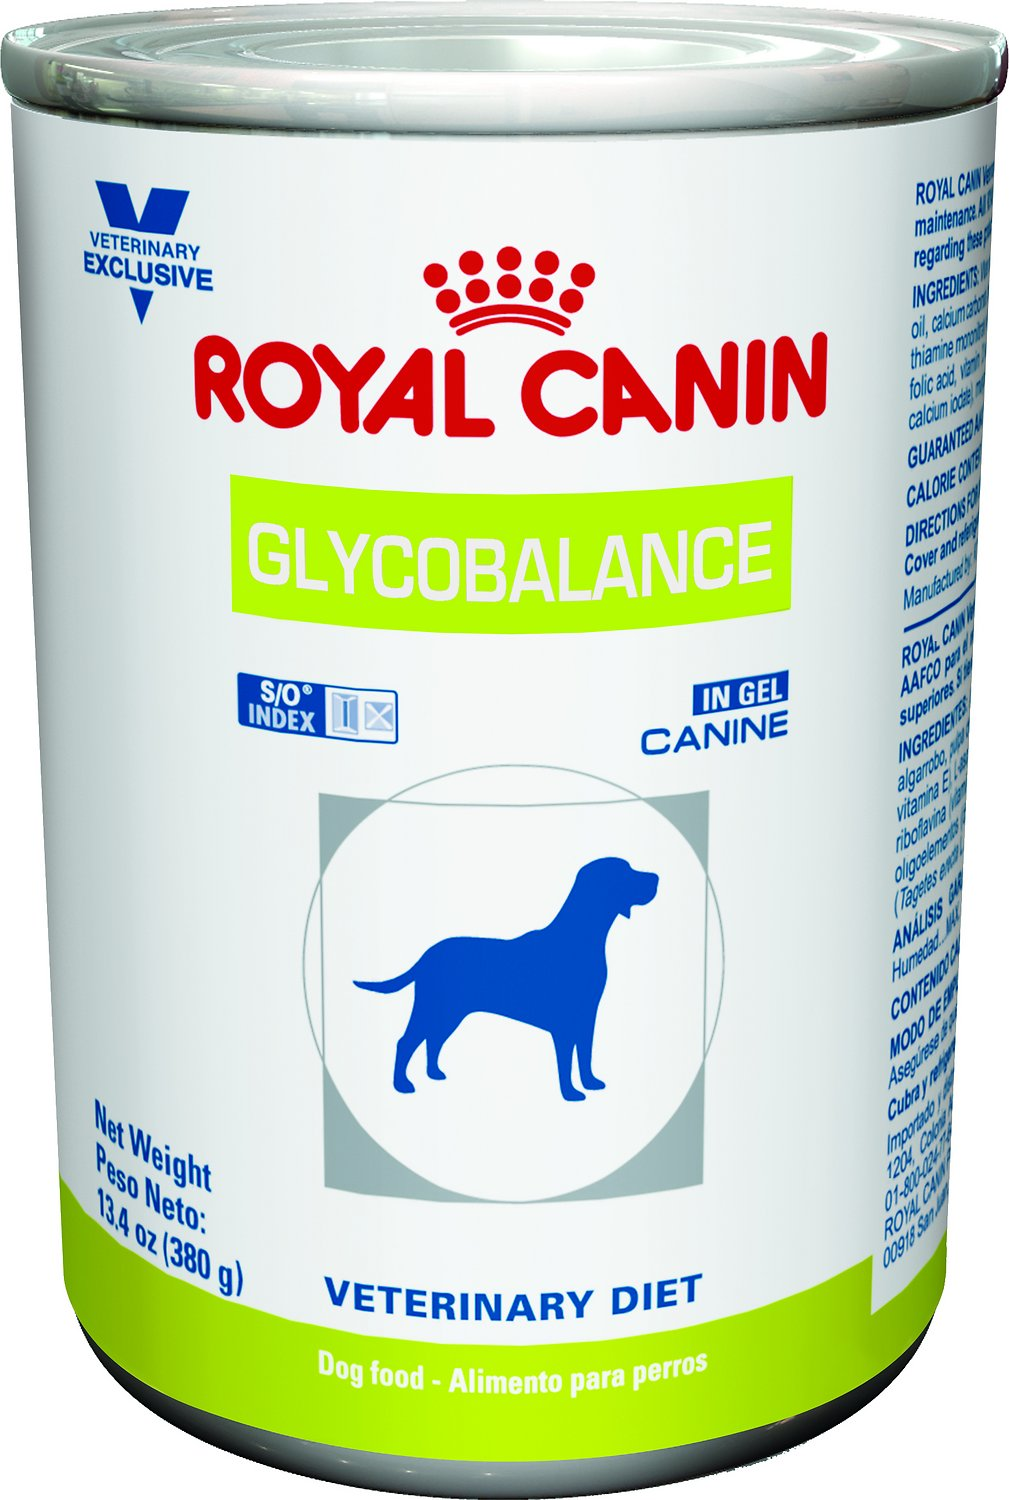 royal canin veterinary diet canine glycobalance canned dog food 13 4 oz case of 24. Black Bedroom Furniture Sets. Home Design Ideas